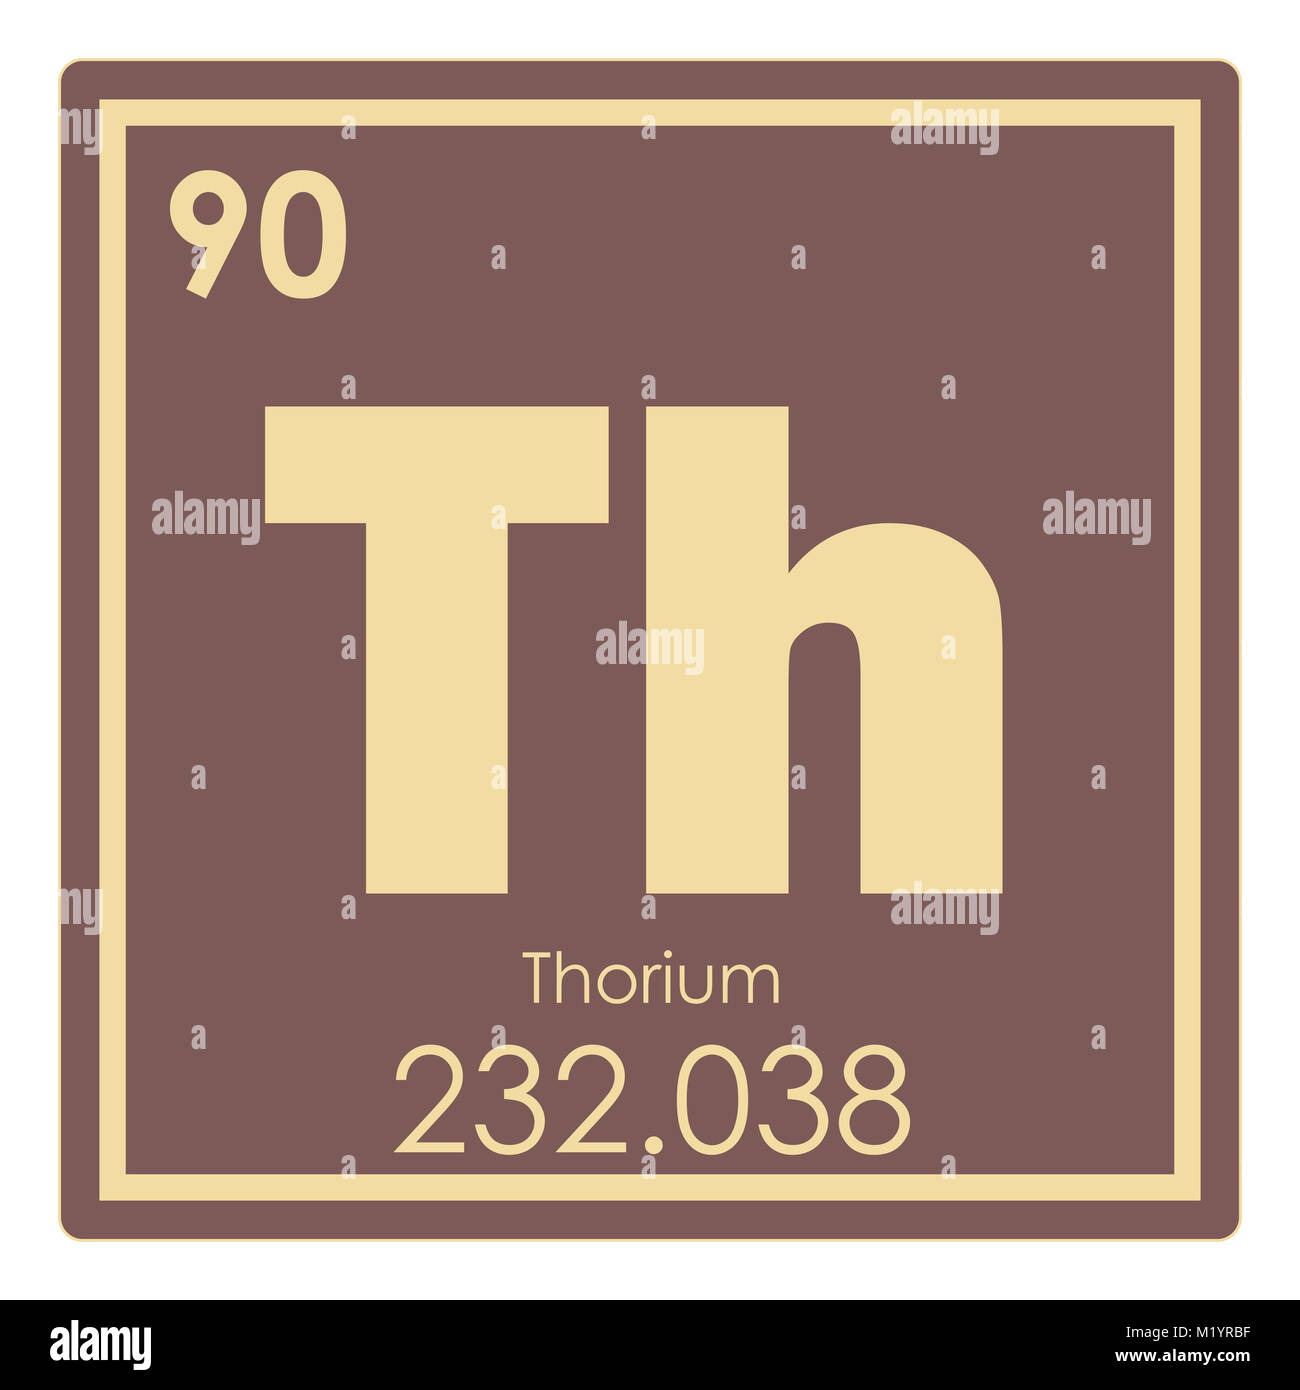 Thorium Chemical Element Stock Photos Thorium Chemical Element